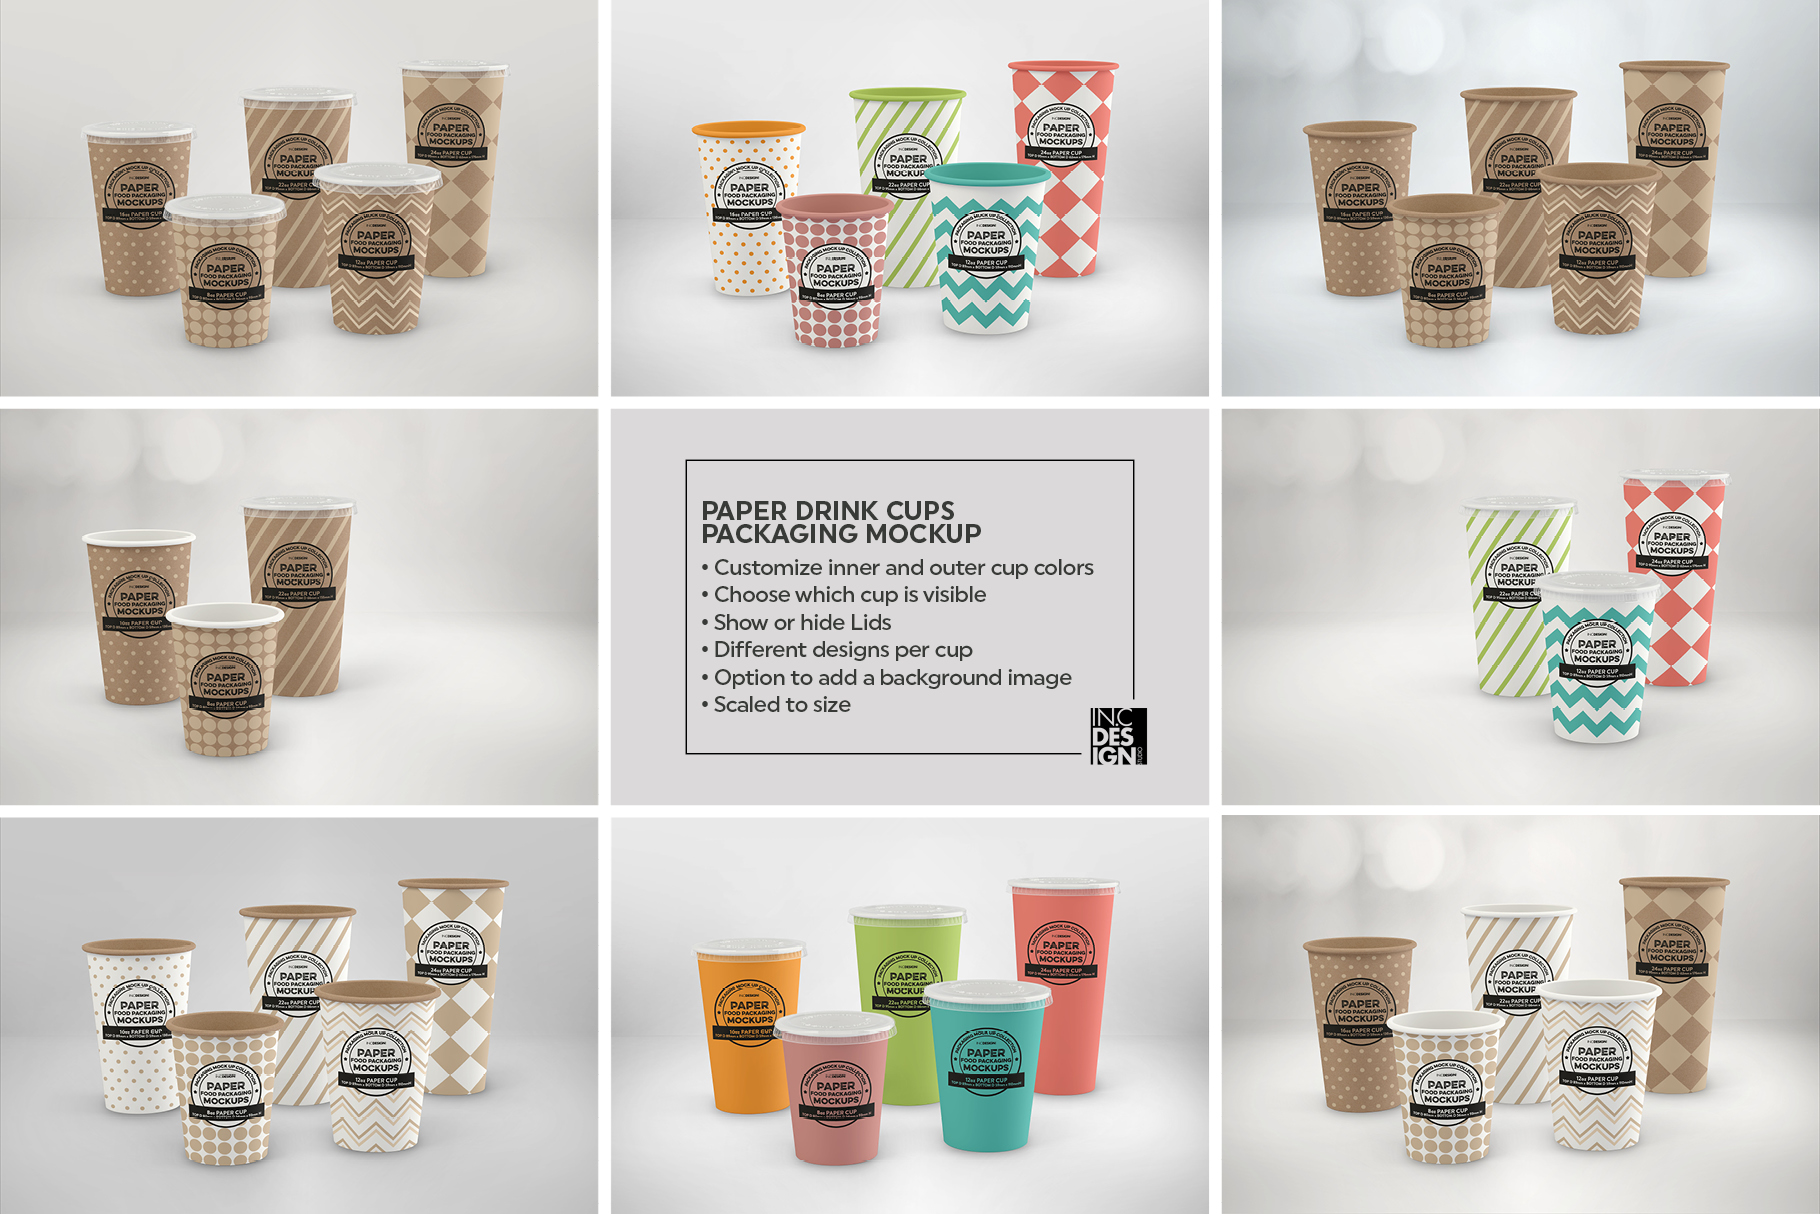 Paper Drink Cups Packaging Mockup example image 6